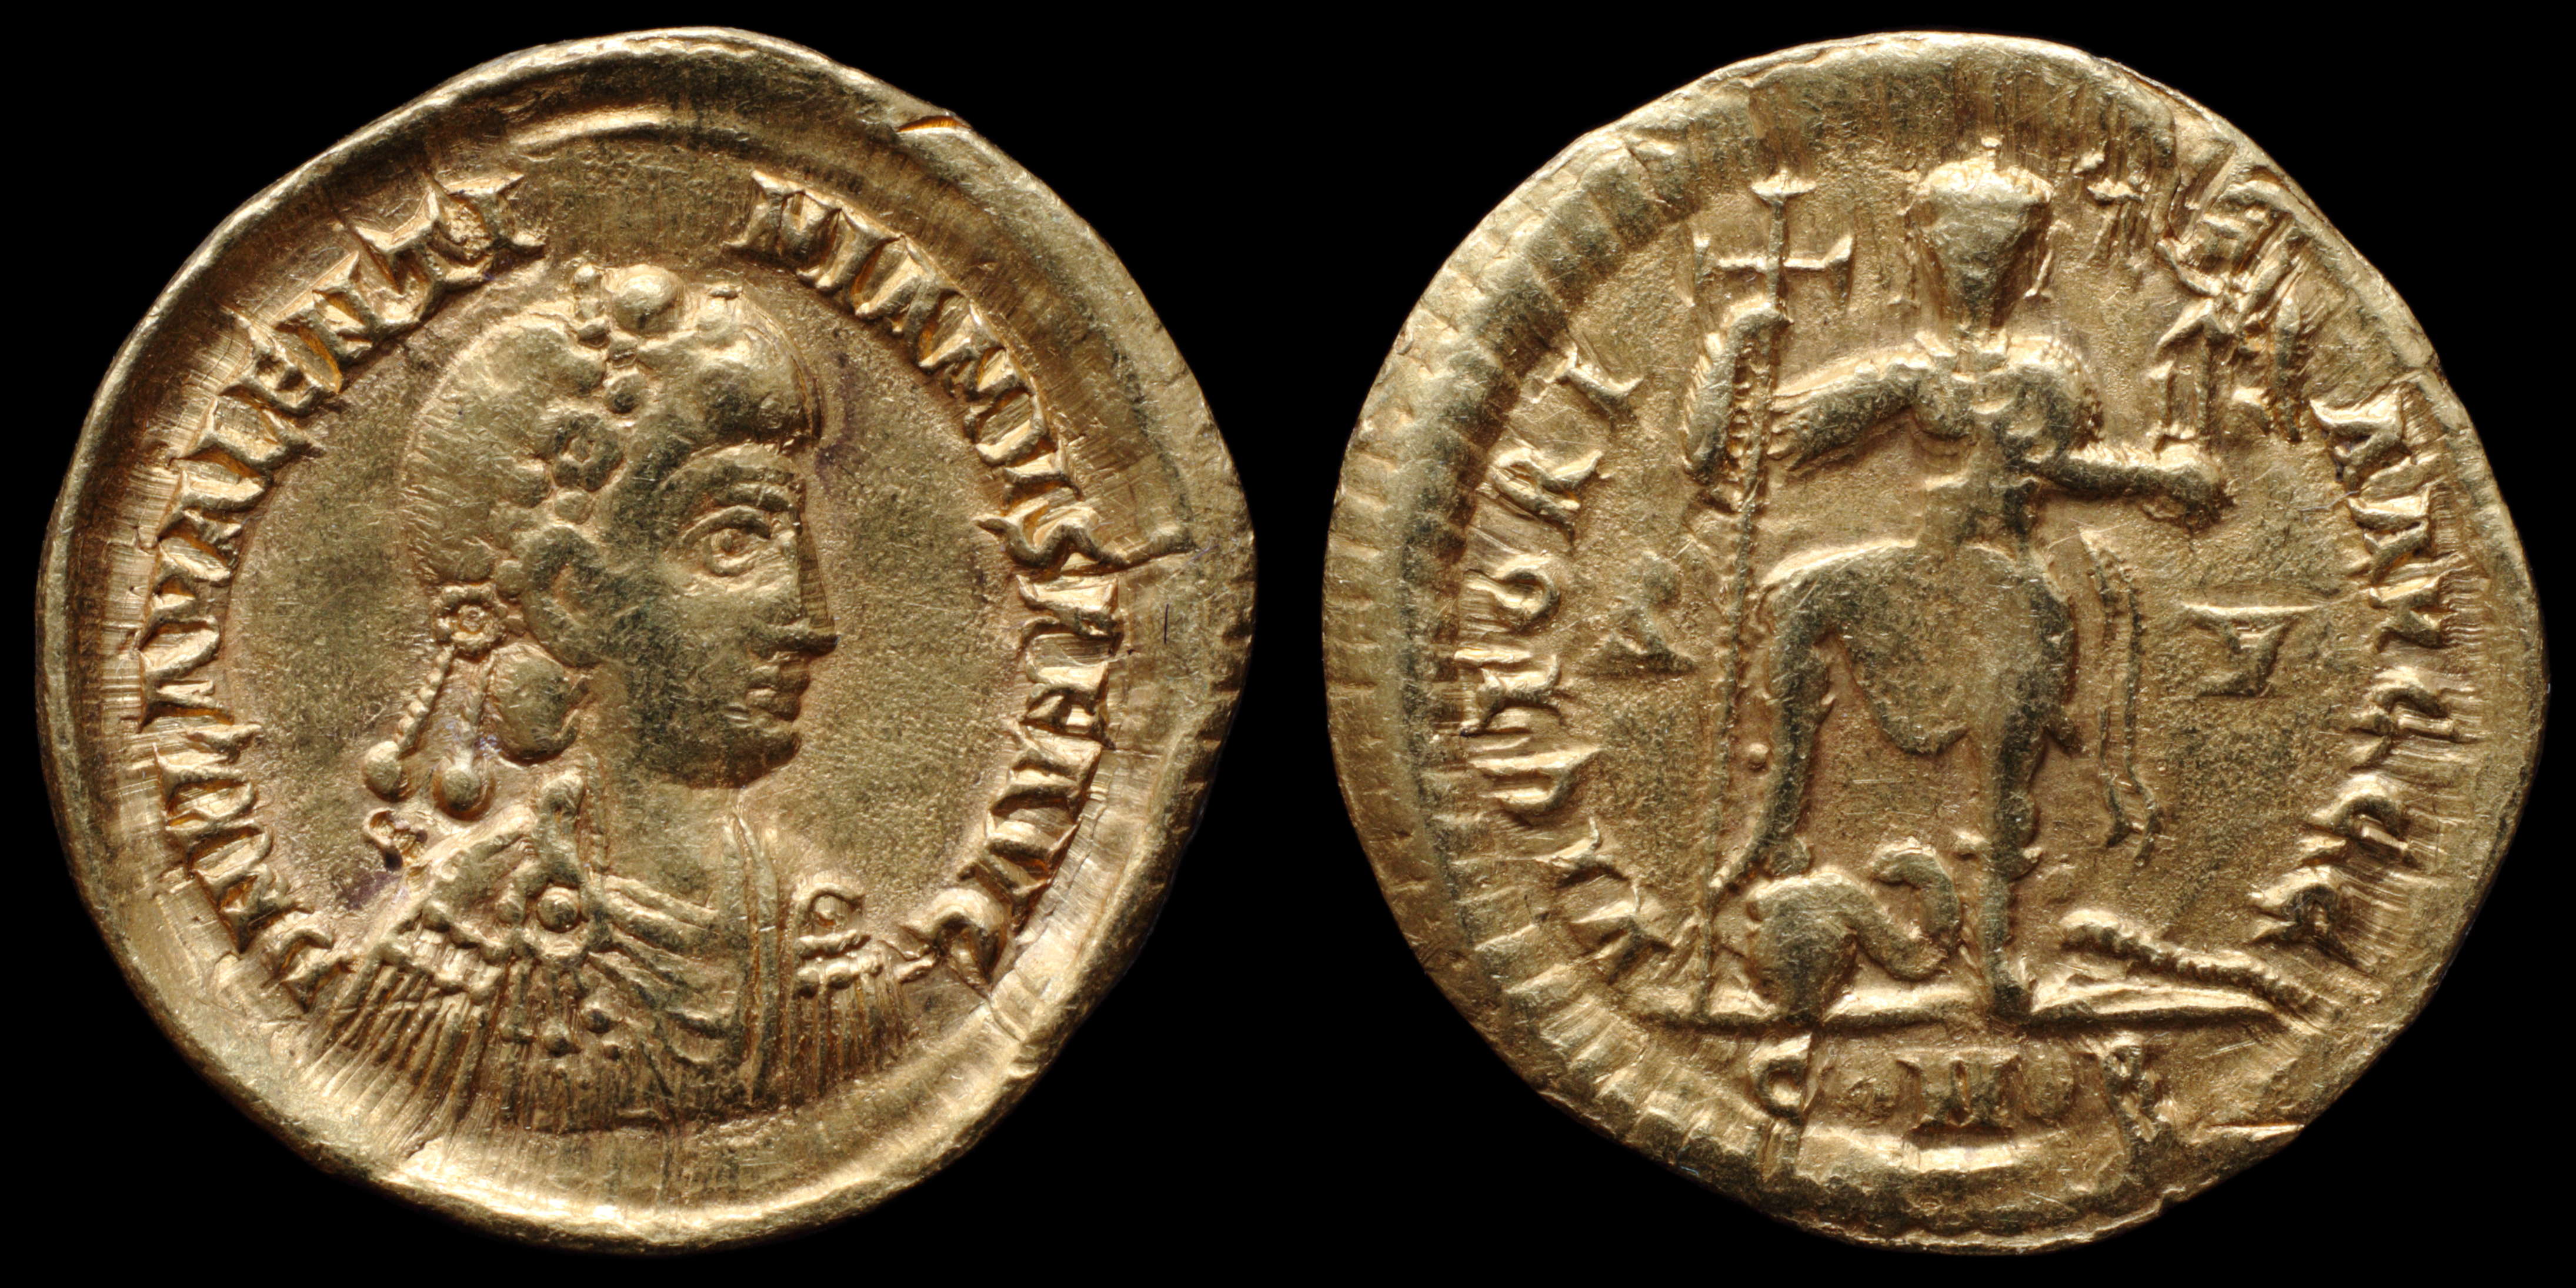 /Files/Images/Coinsite/CoinDB/1708_Valentinianus_IIIx.jpg